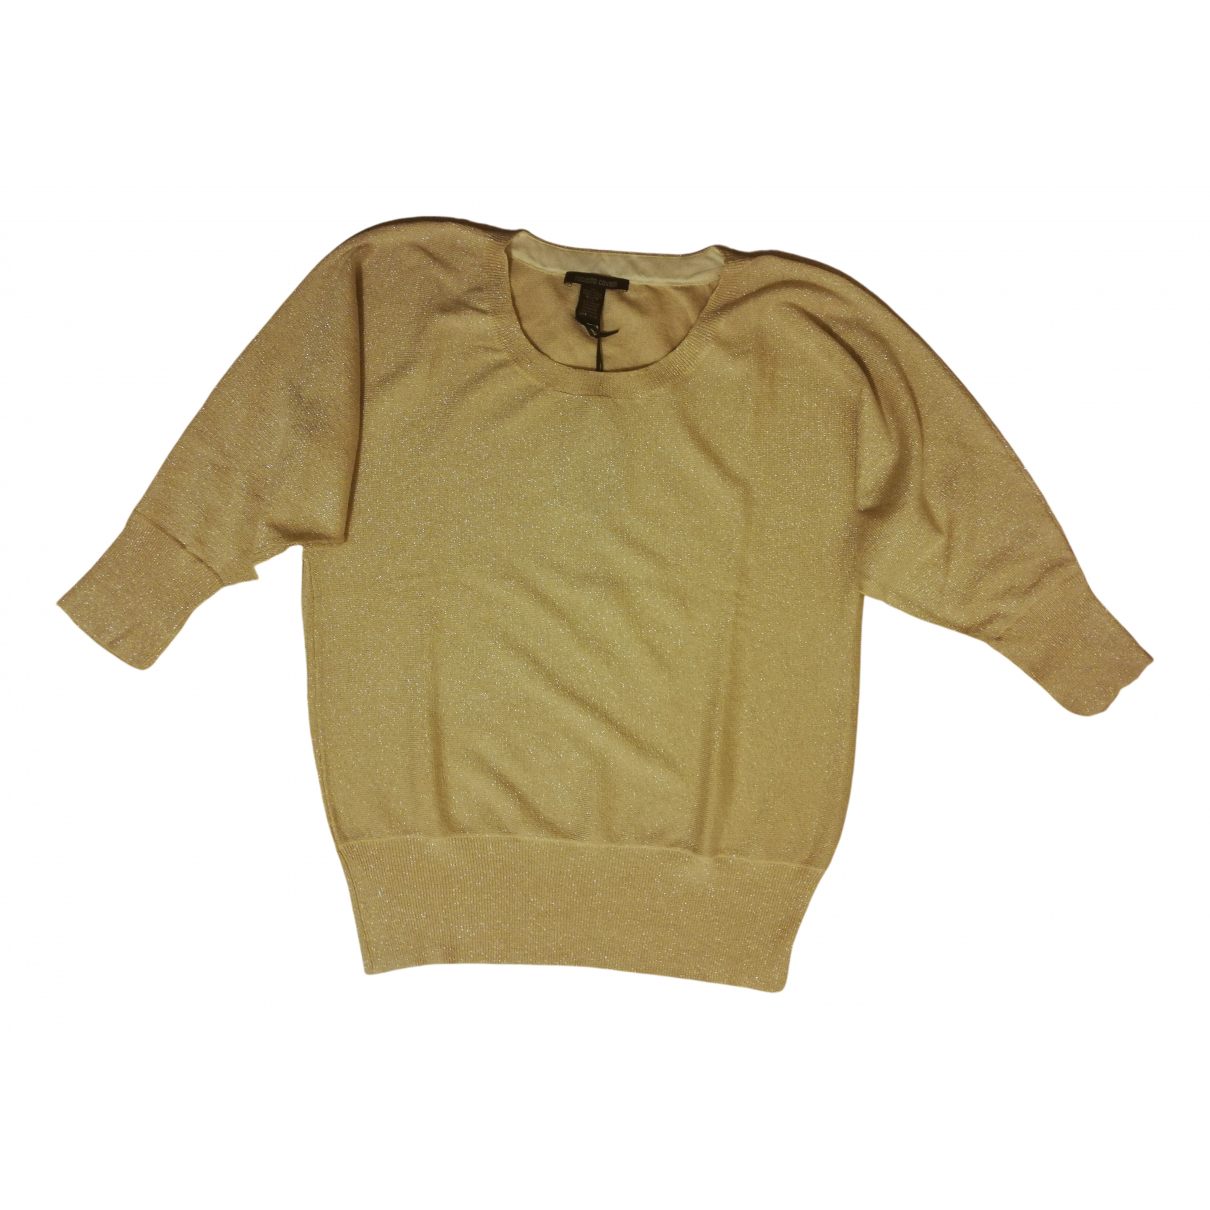 Roberto Cavalli N Gold Cashmere Knitwear for Women M International